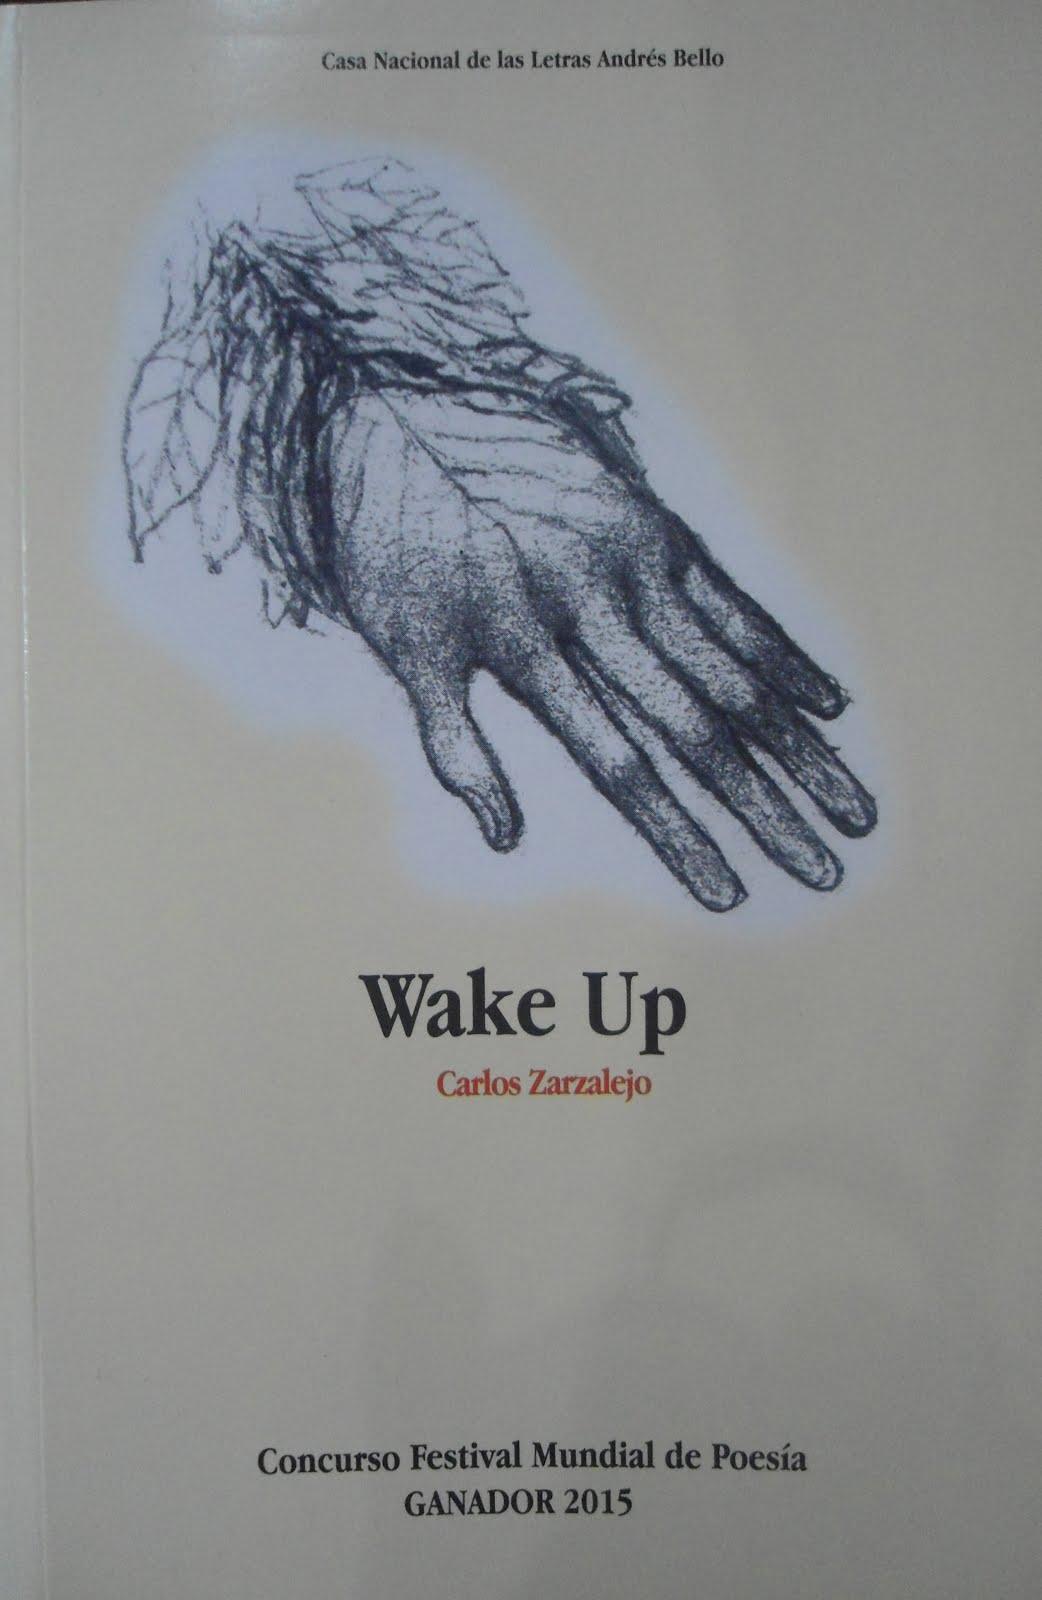 Wake up! Adquiéralo en ebay